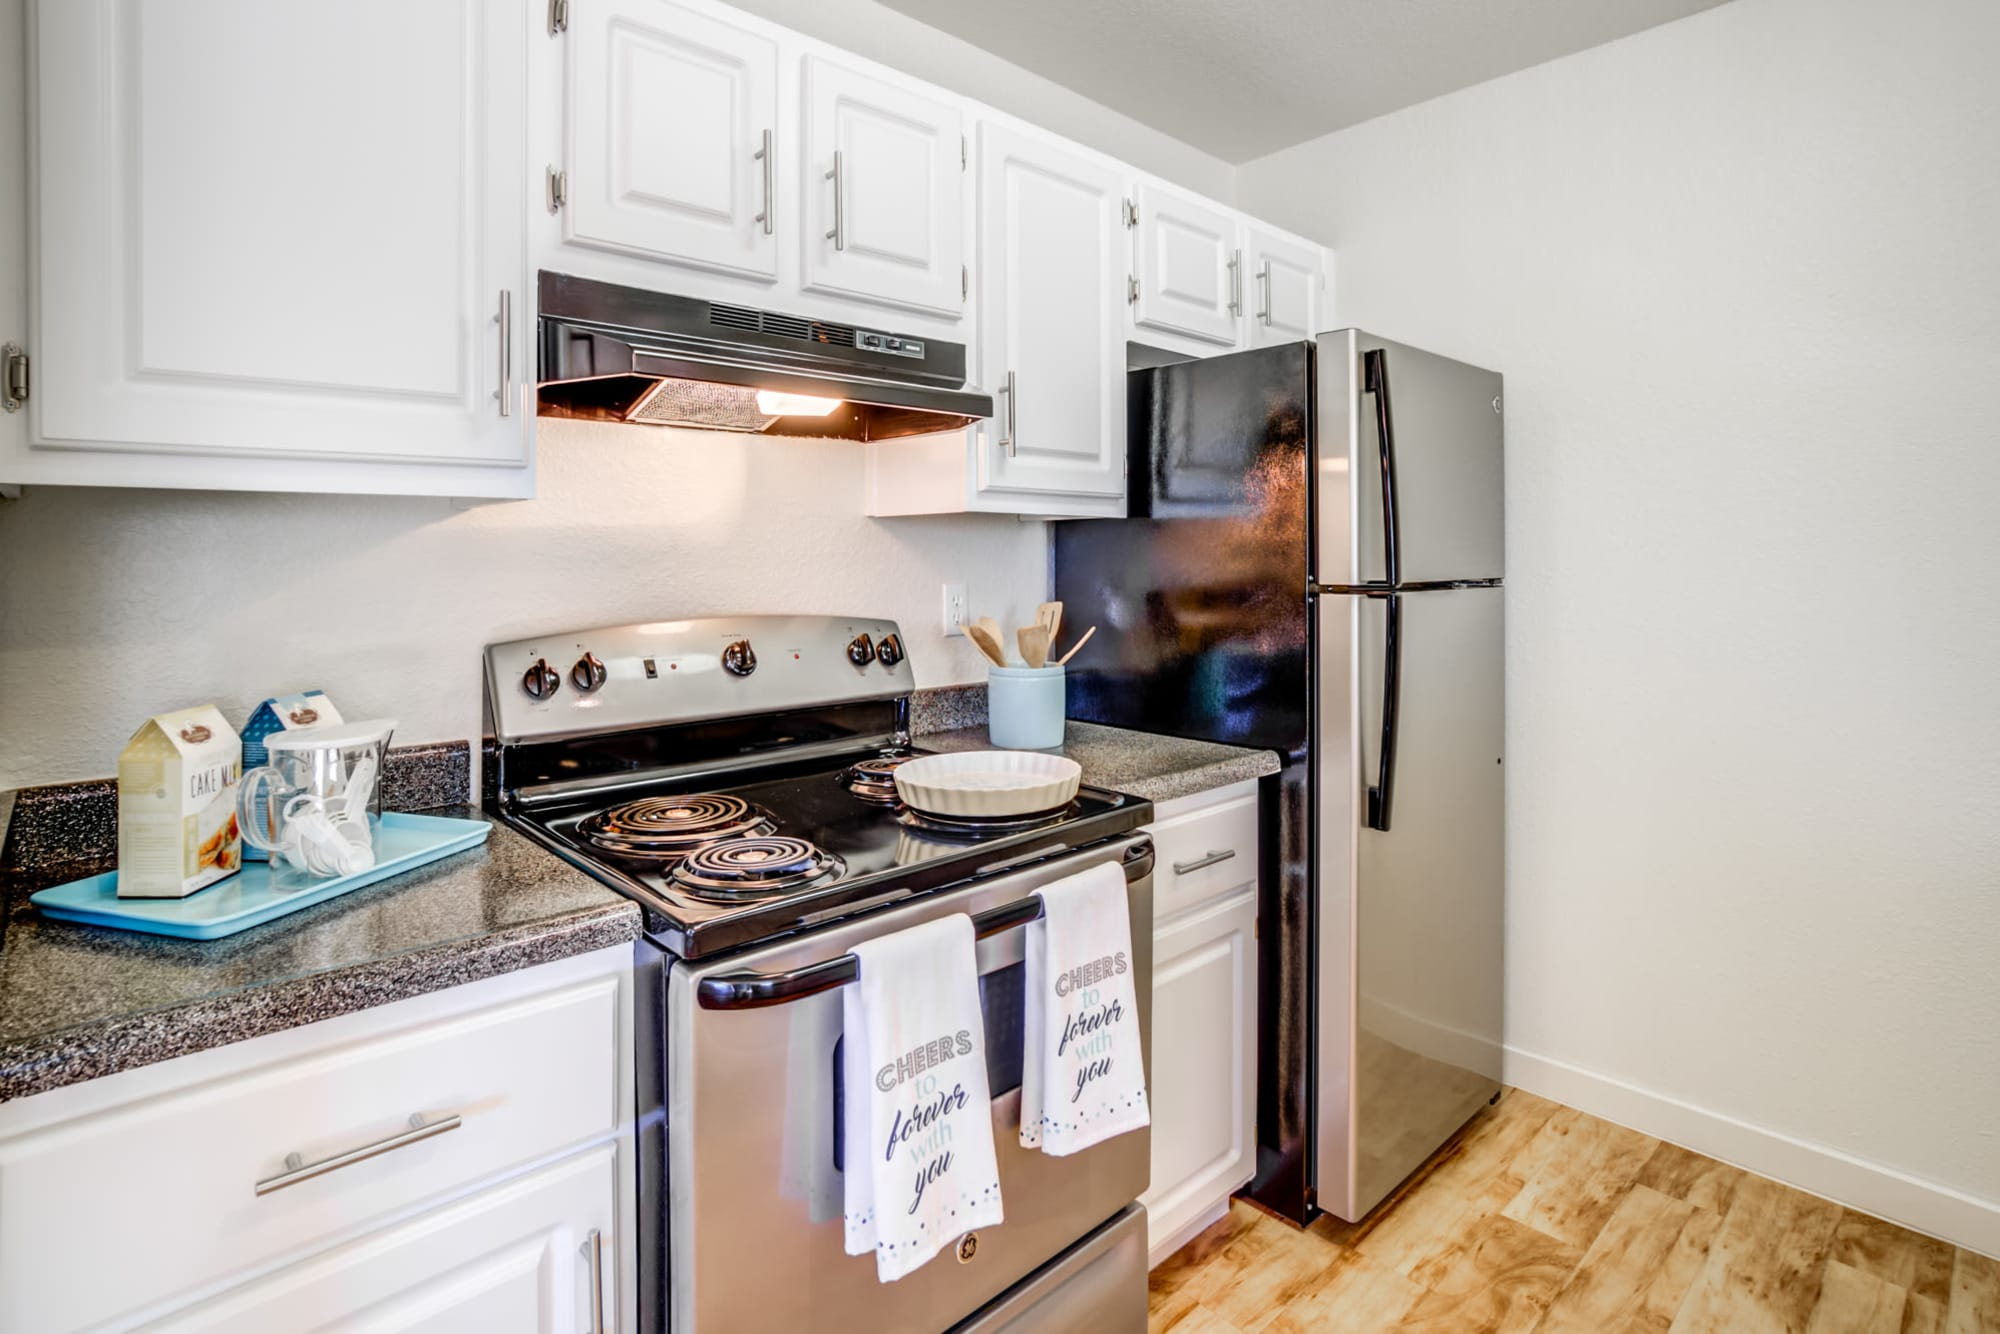 Fully Equipped Kitchen with Stainless steel appliances at Sommerset Apartments in Vacaville, CA